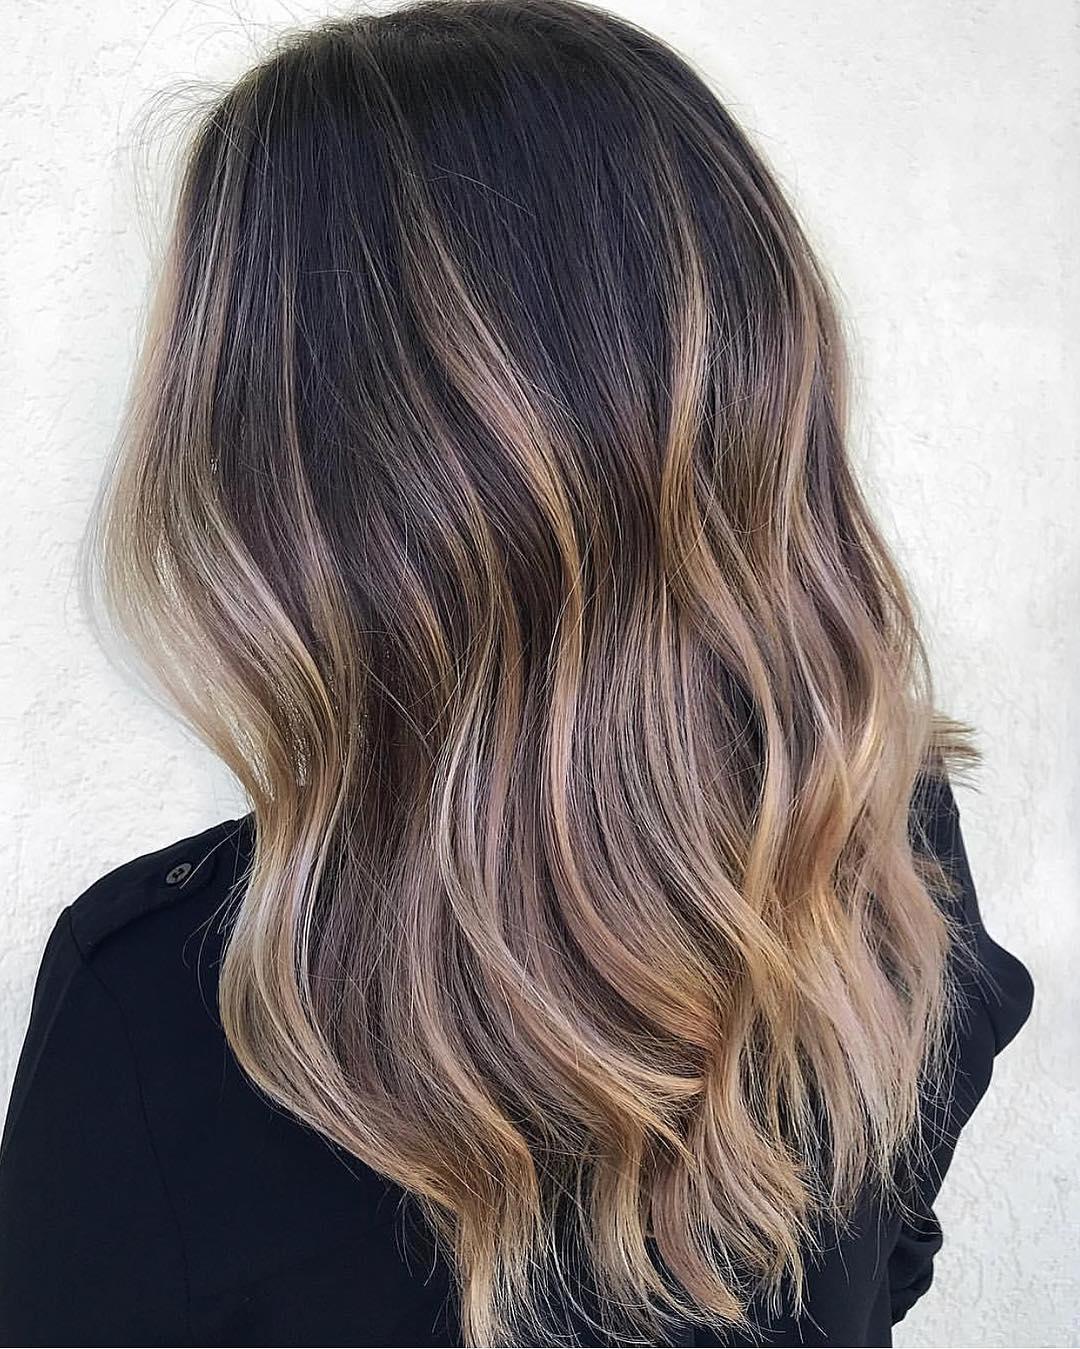 Creamy Balayage Highlights with Light Waves